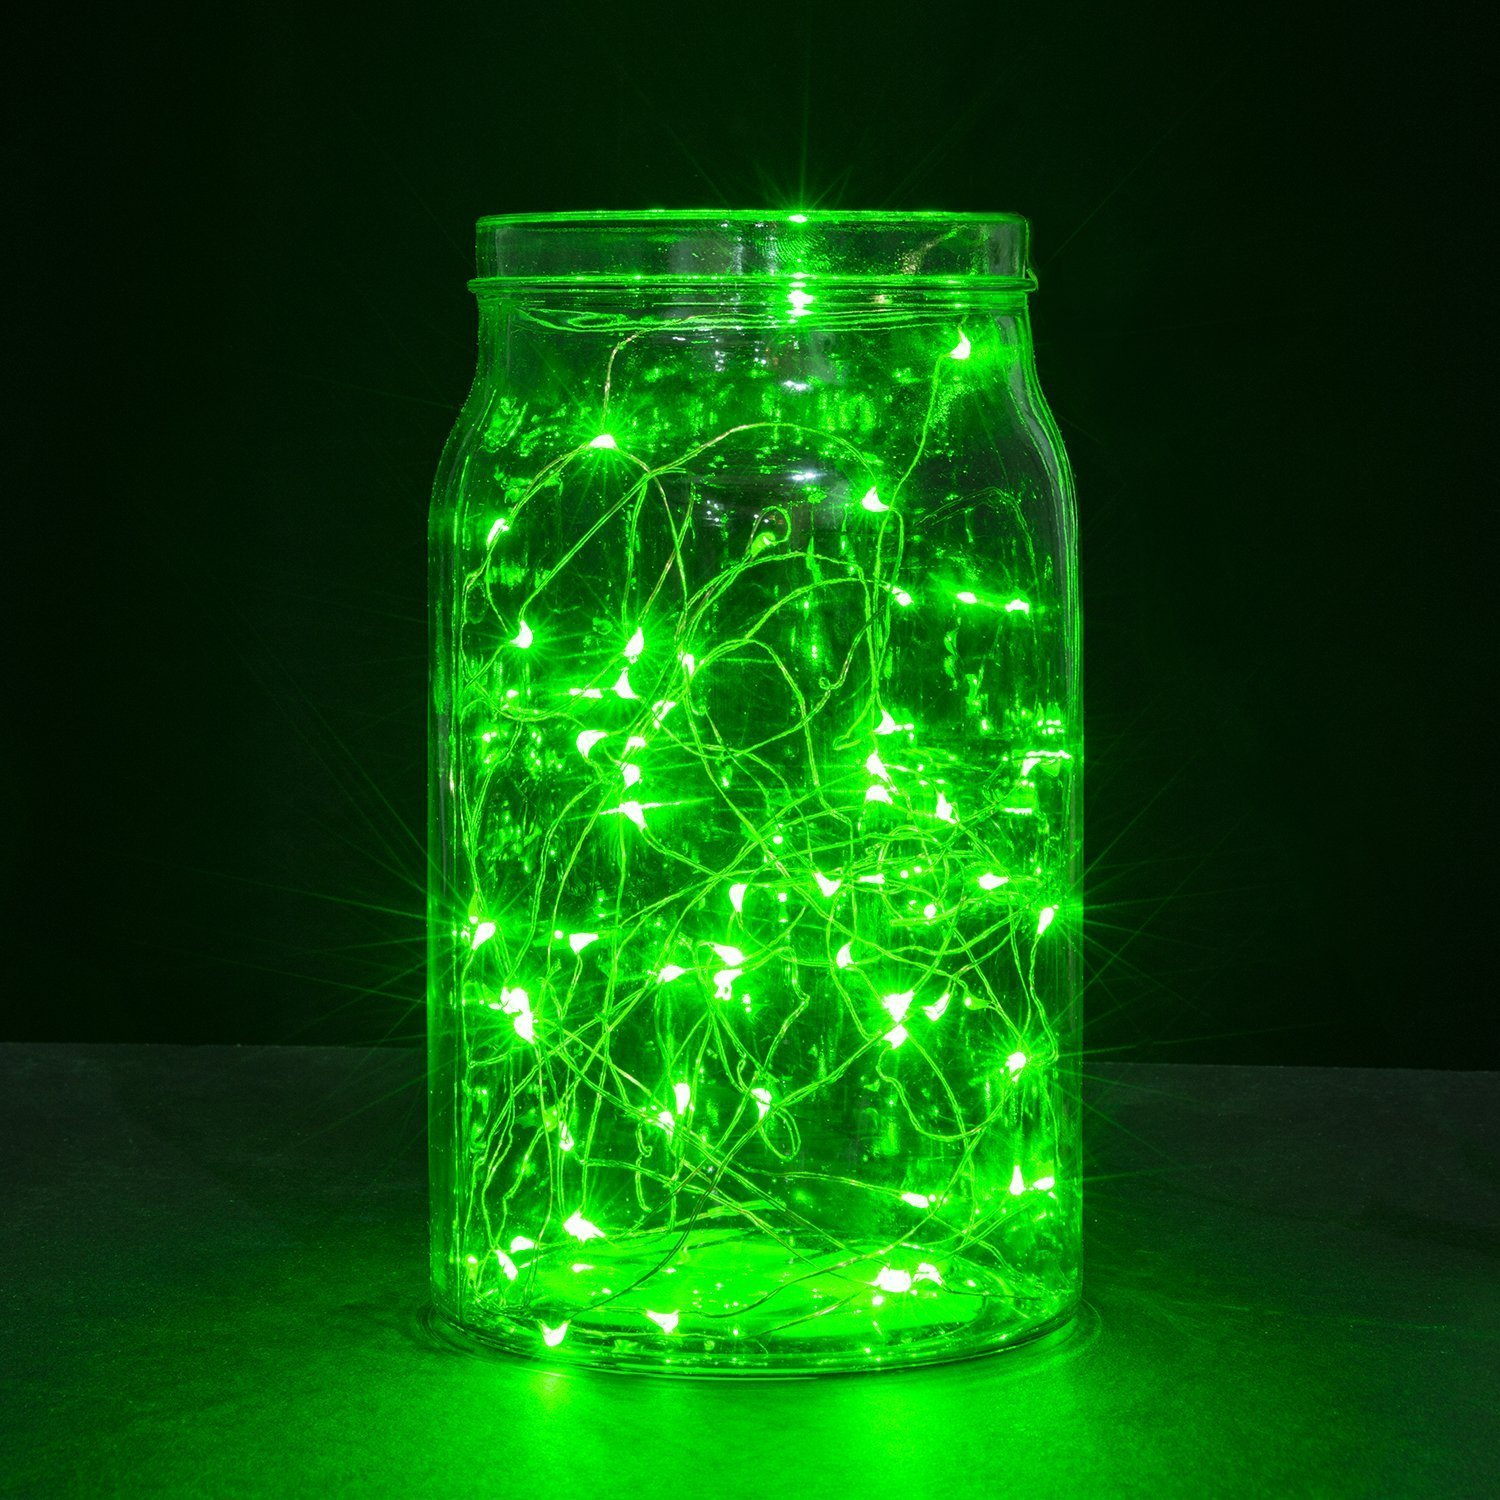 Oak Leaf 2-pack 3m LED String Lights 2 Set of Micro 30 LEDs Decorative Lights Copper Wire Fairy Starry String Lights for Home Bedroom Party Decoration Trees - Green